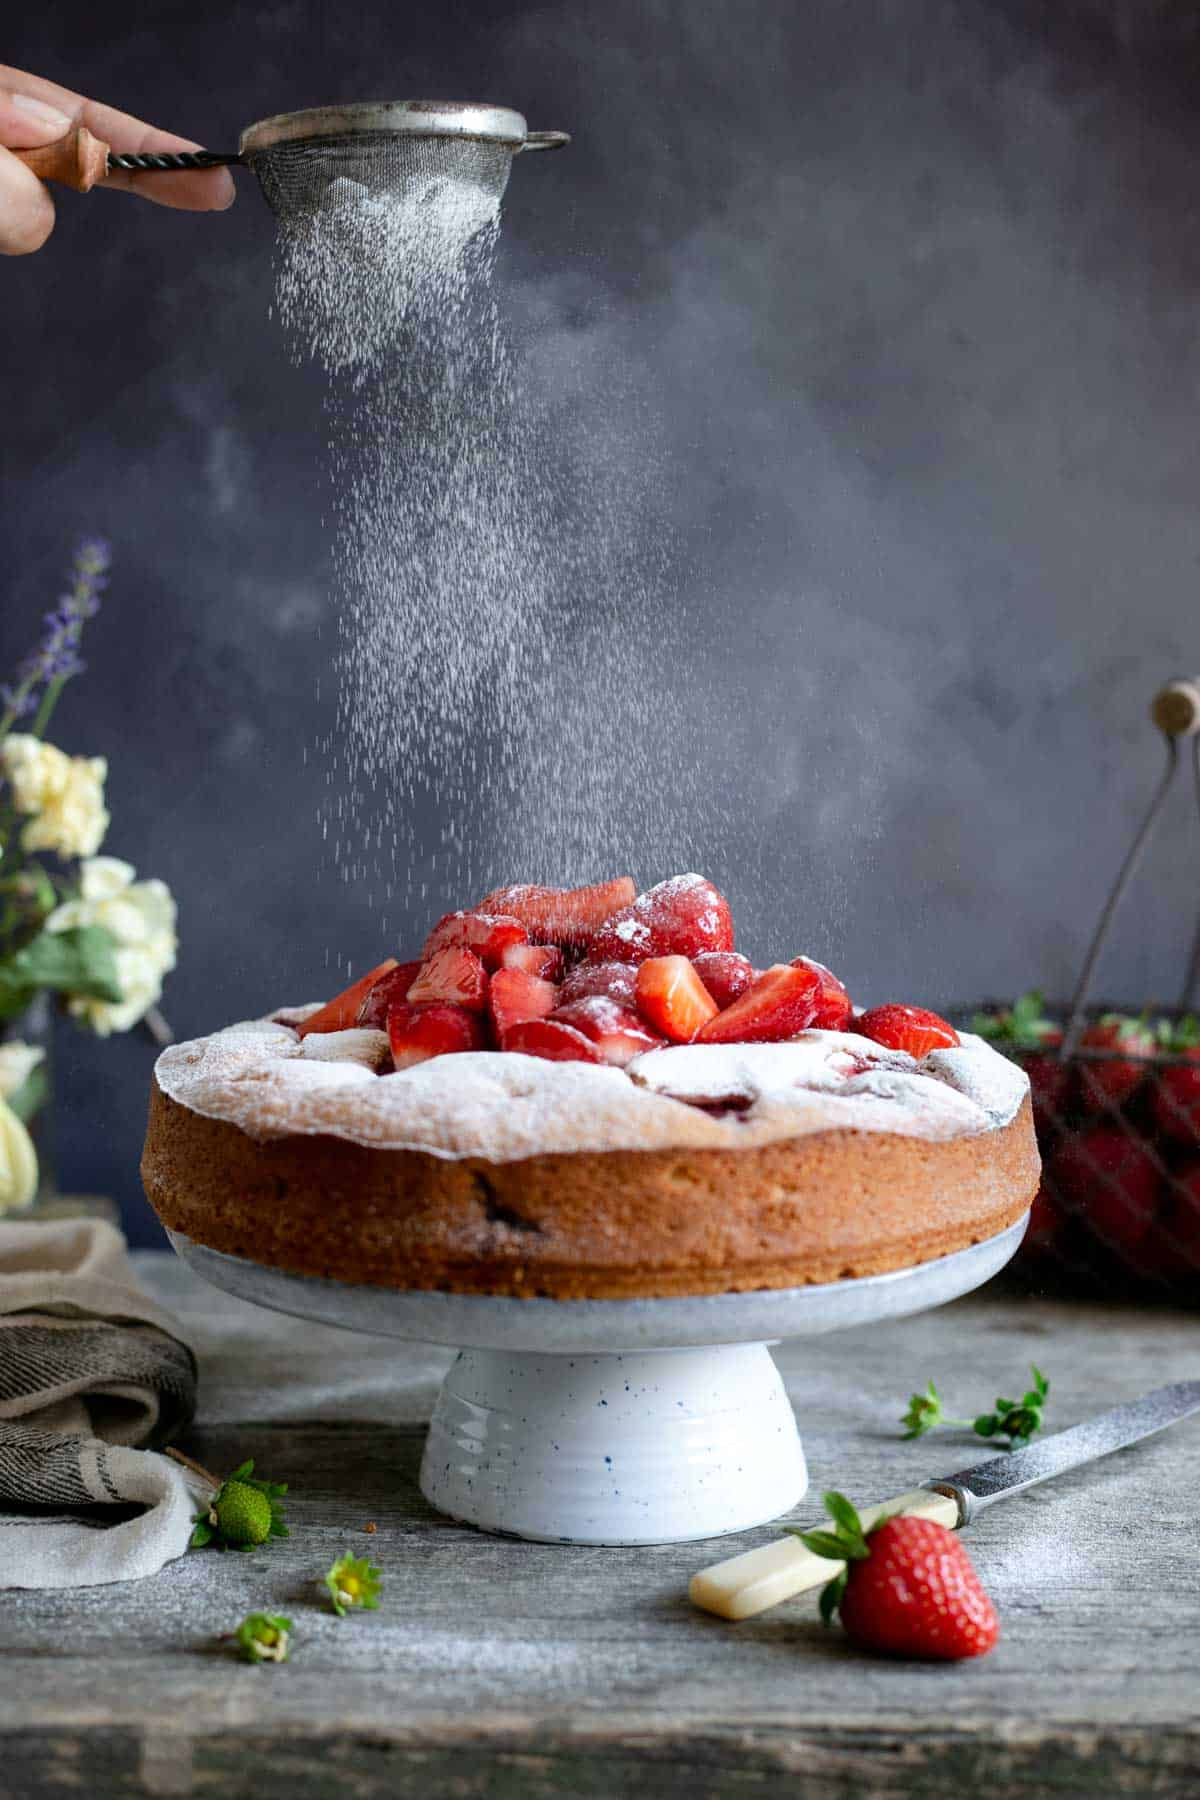 Fresh strawberry yogurt cake, super light and airy, very low-fat! #strawberrycake #vegetariancake #lowfat #foodphotography | via @annabanana.co